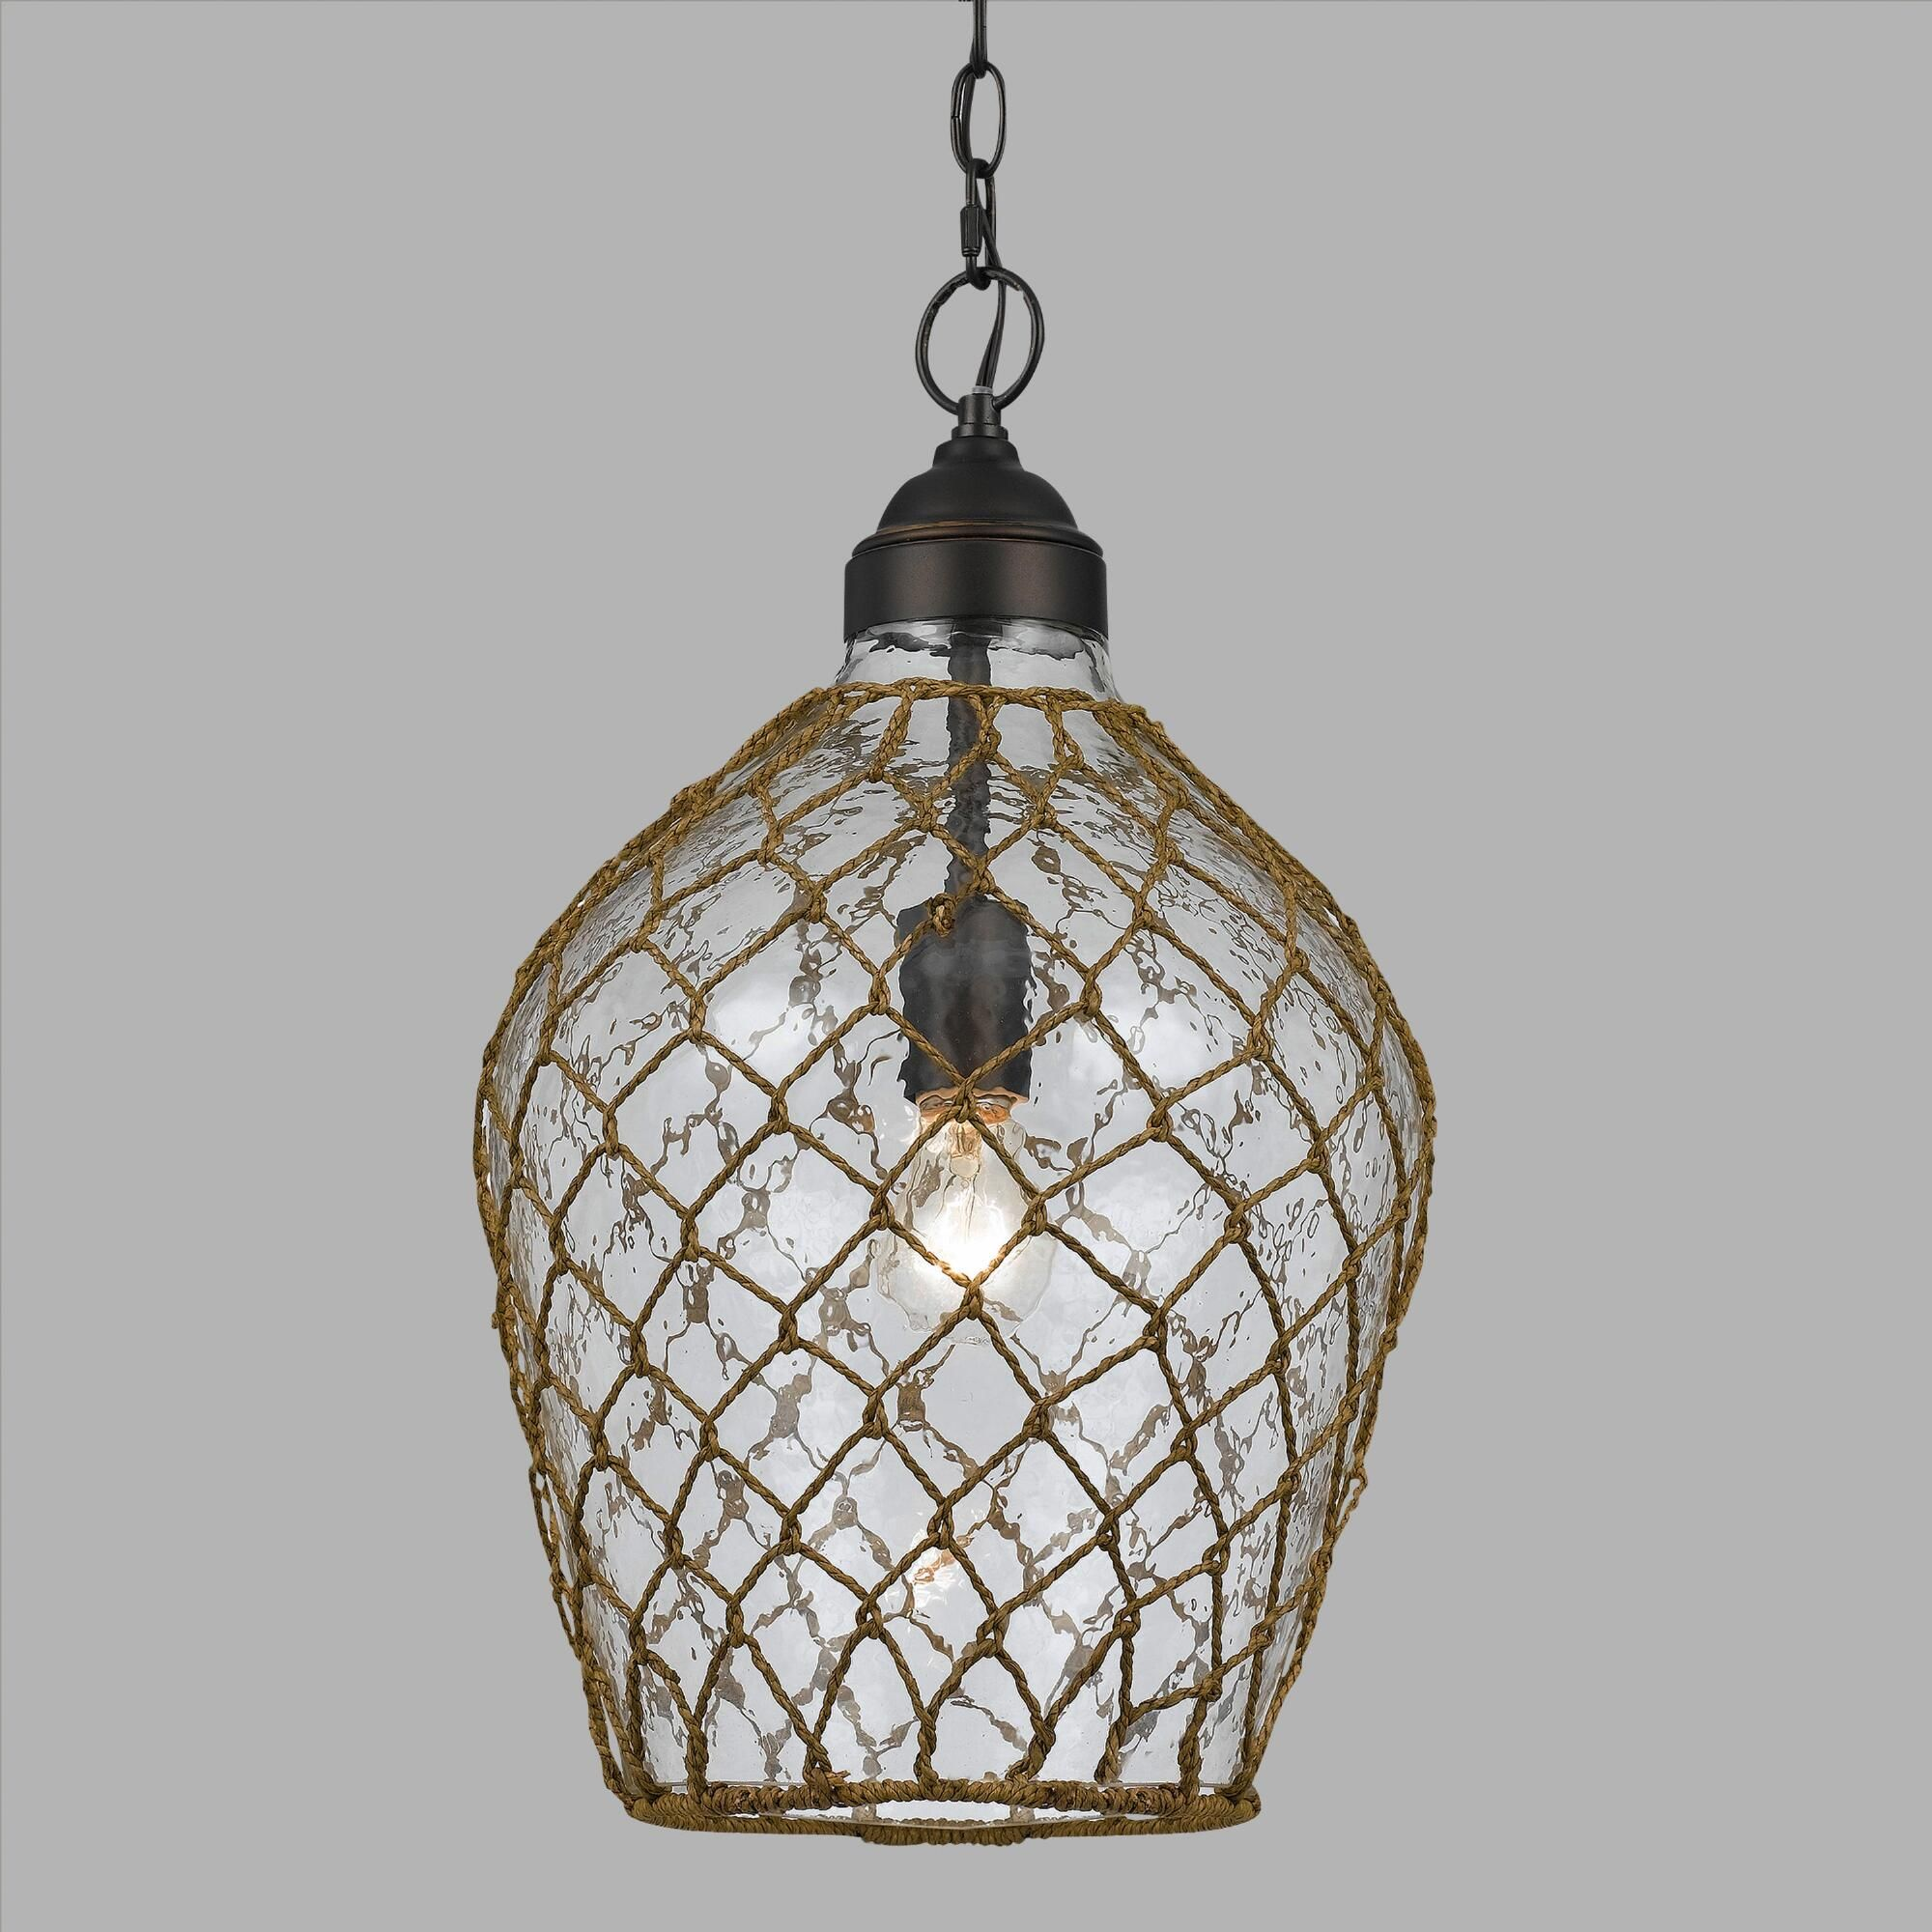 Featuring a textured bubble glass shade artfully wrapped in woven